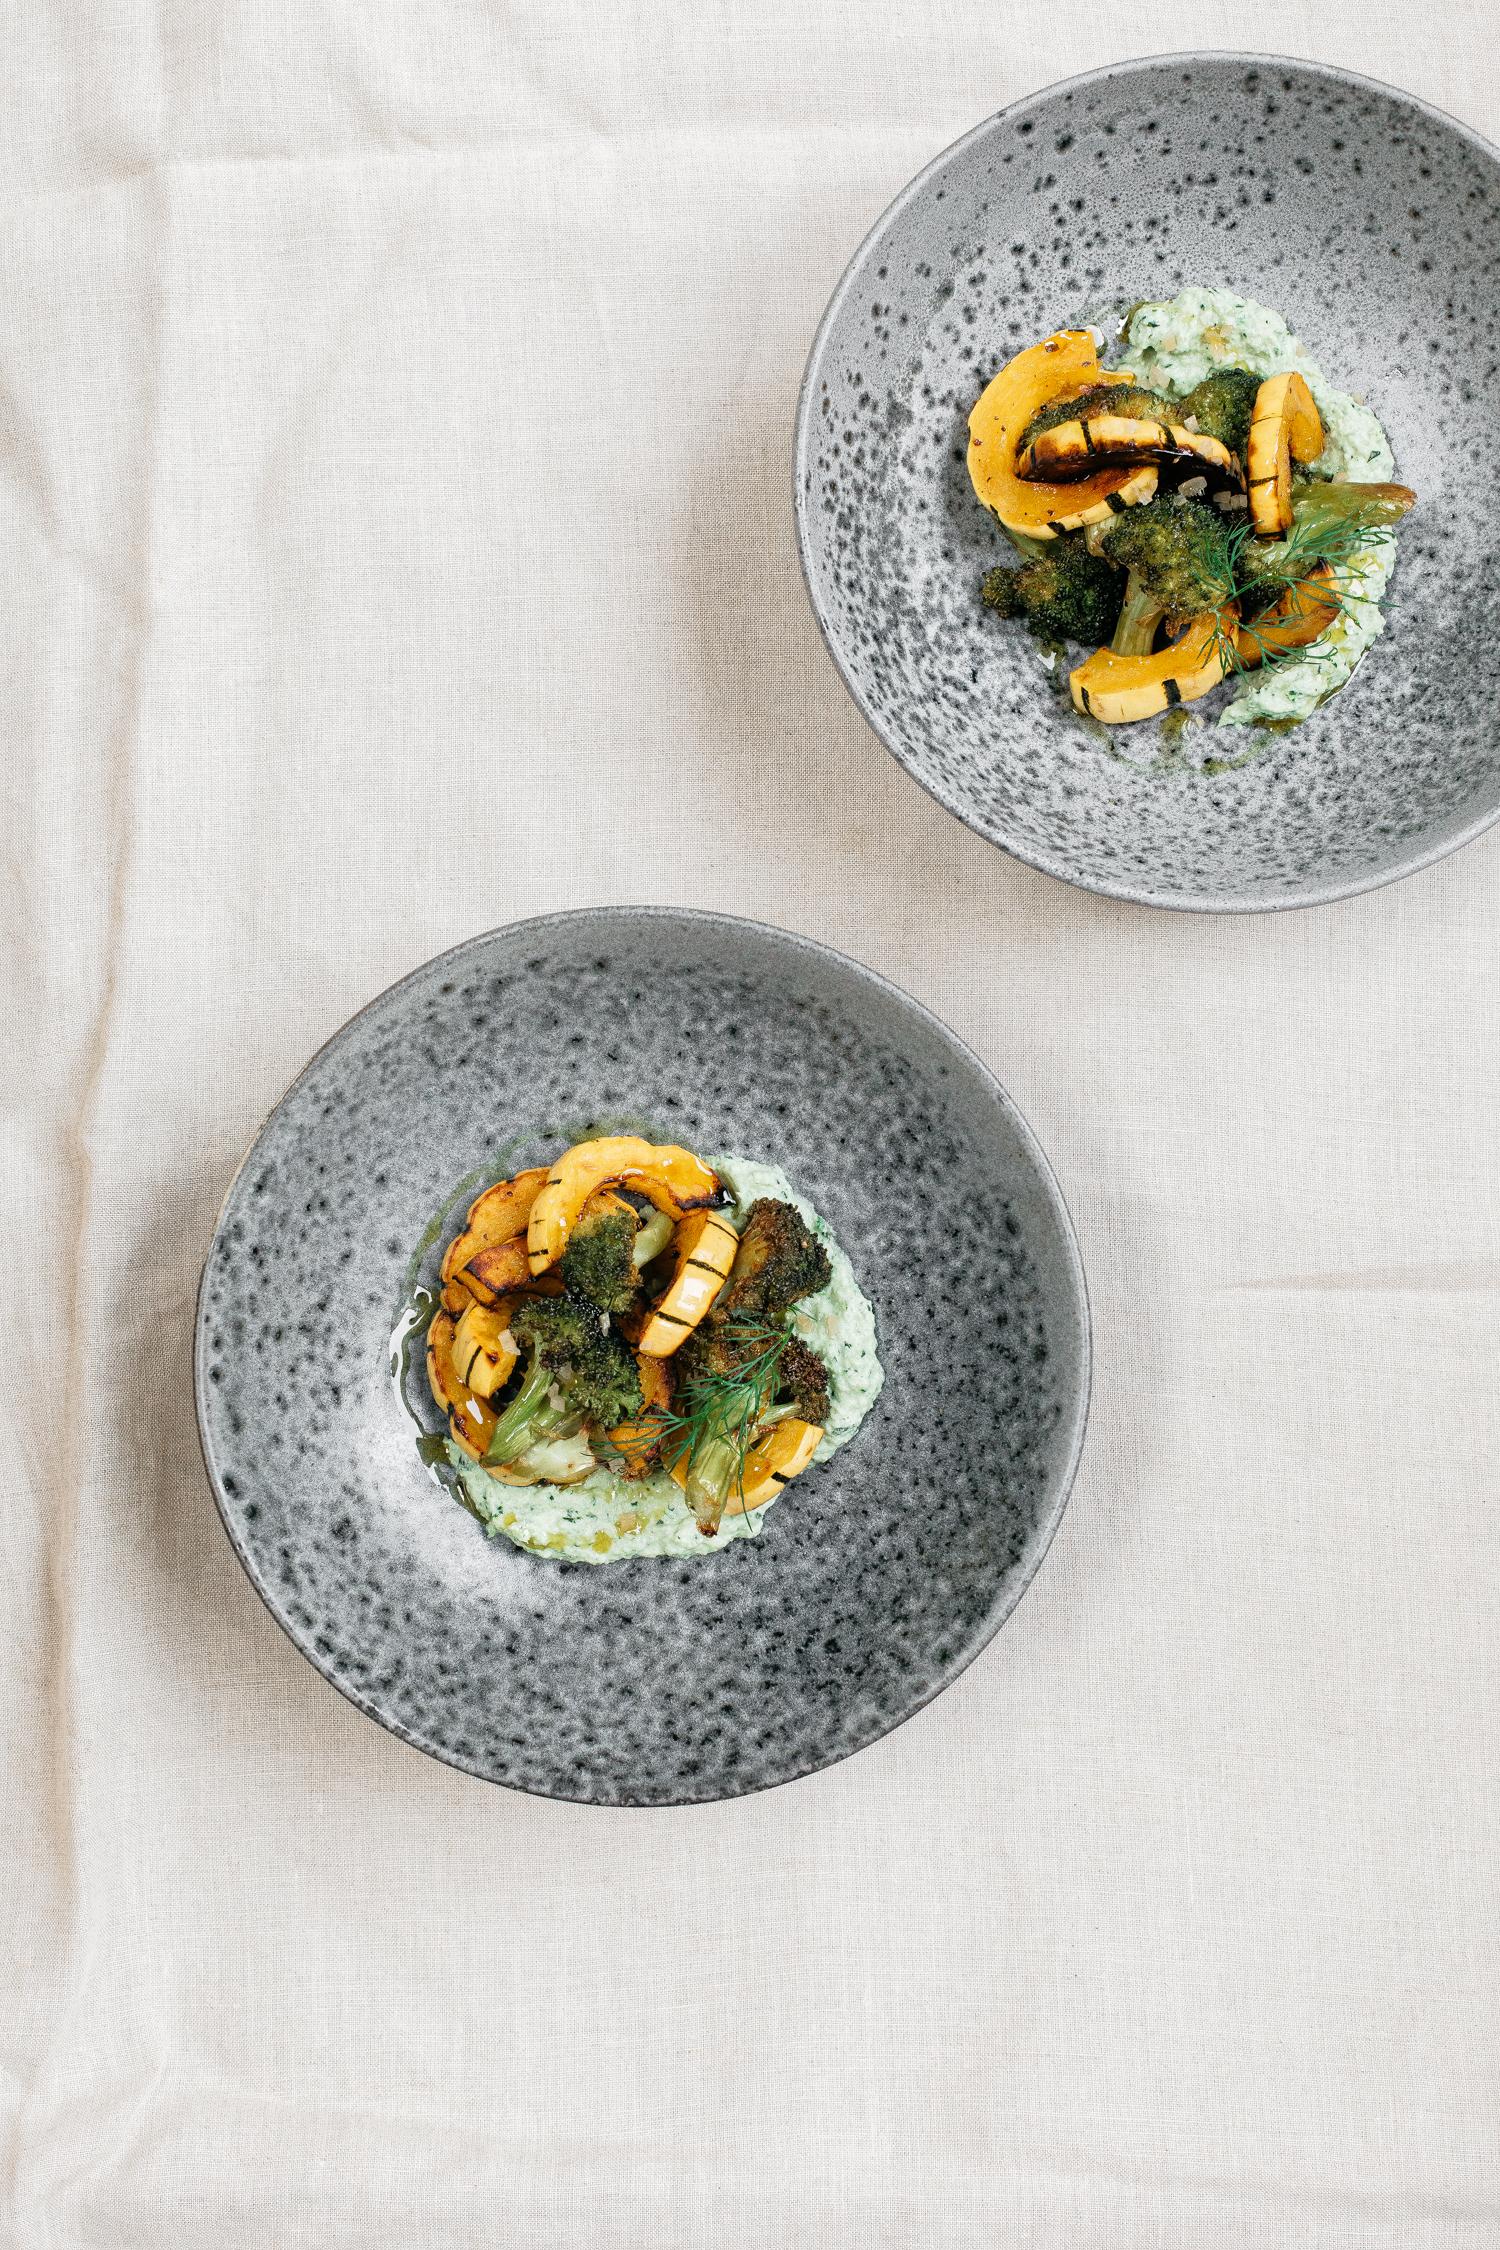 Charred Broccoli & Delicata Squash With Herby Broccoli Puree & Preserved Lemon